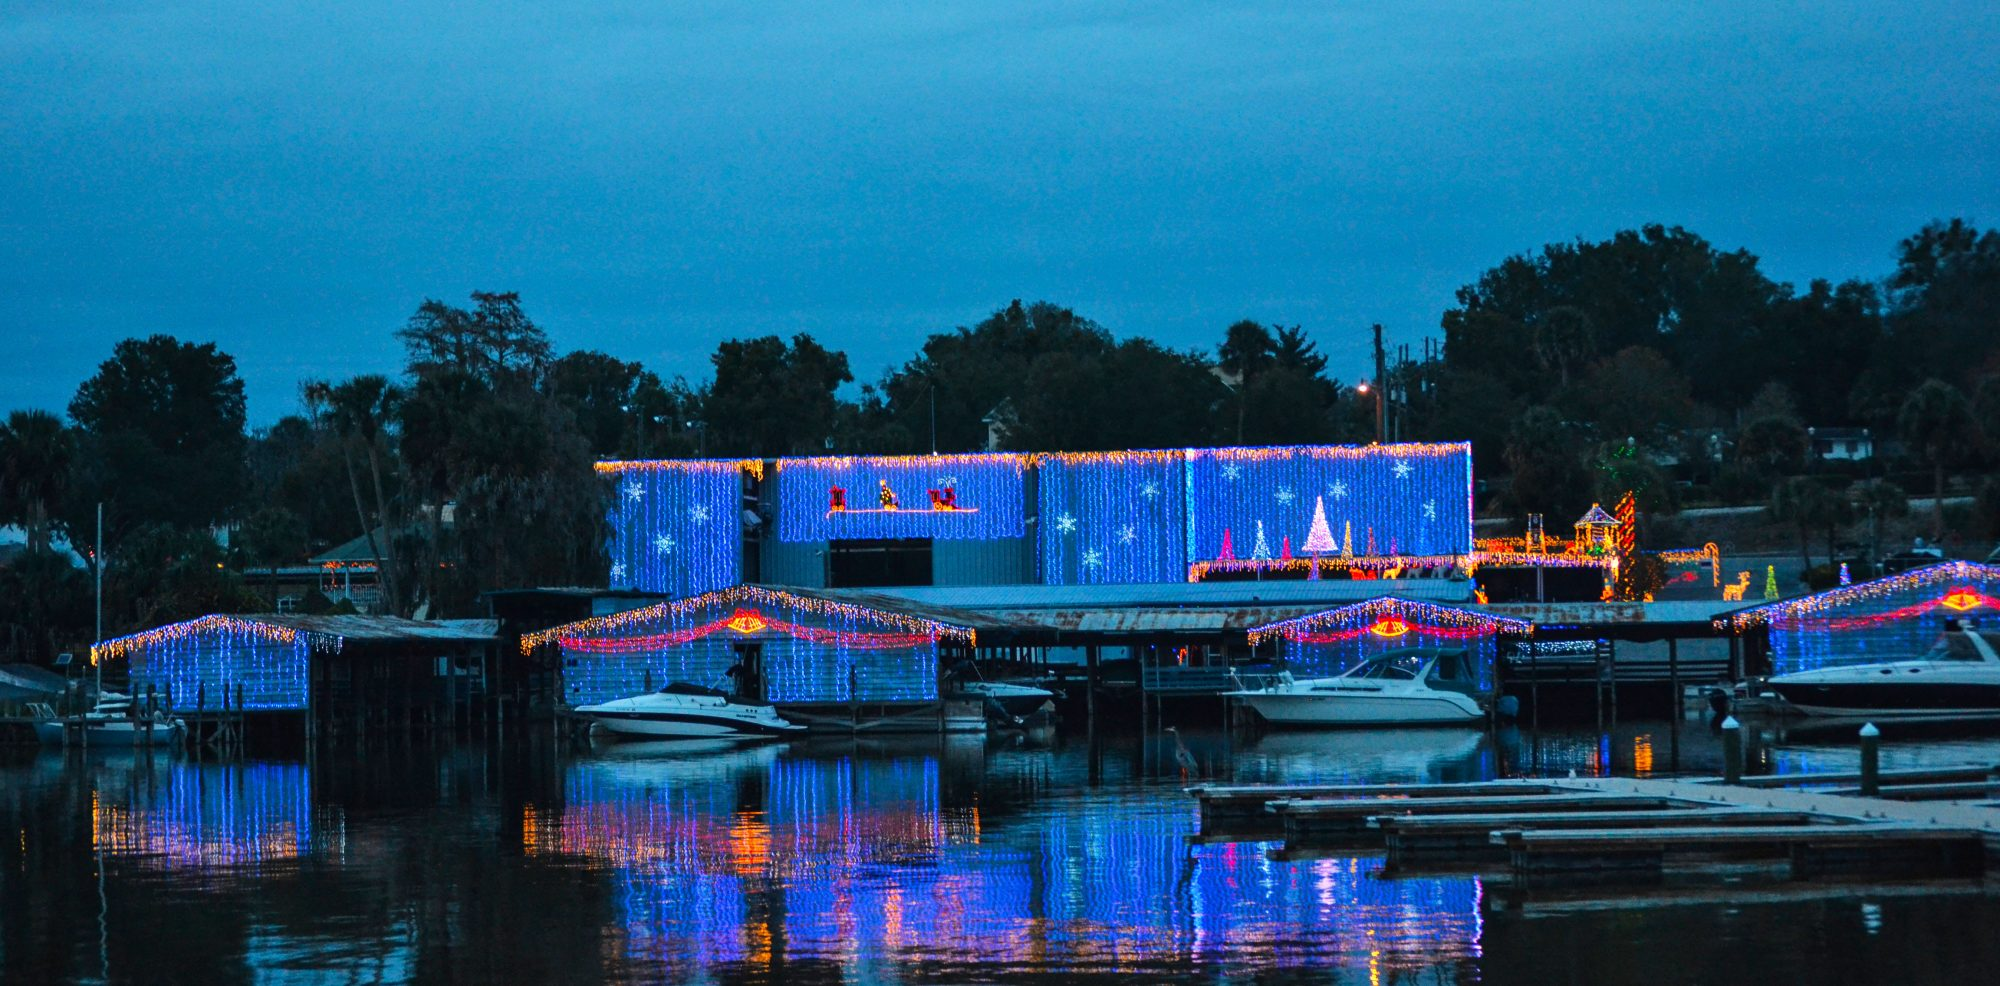 Mount Dora at Christmas